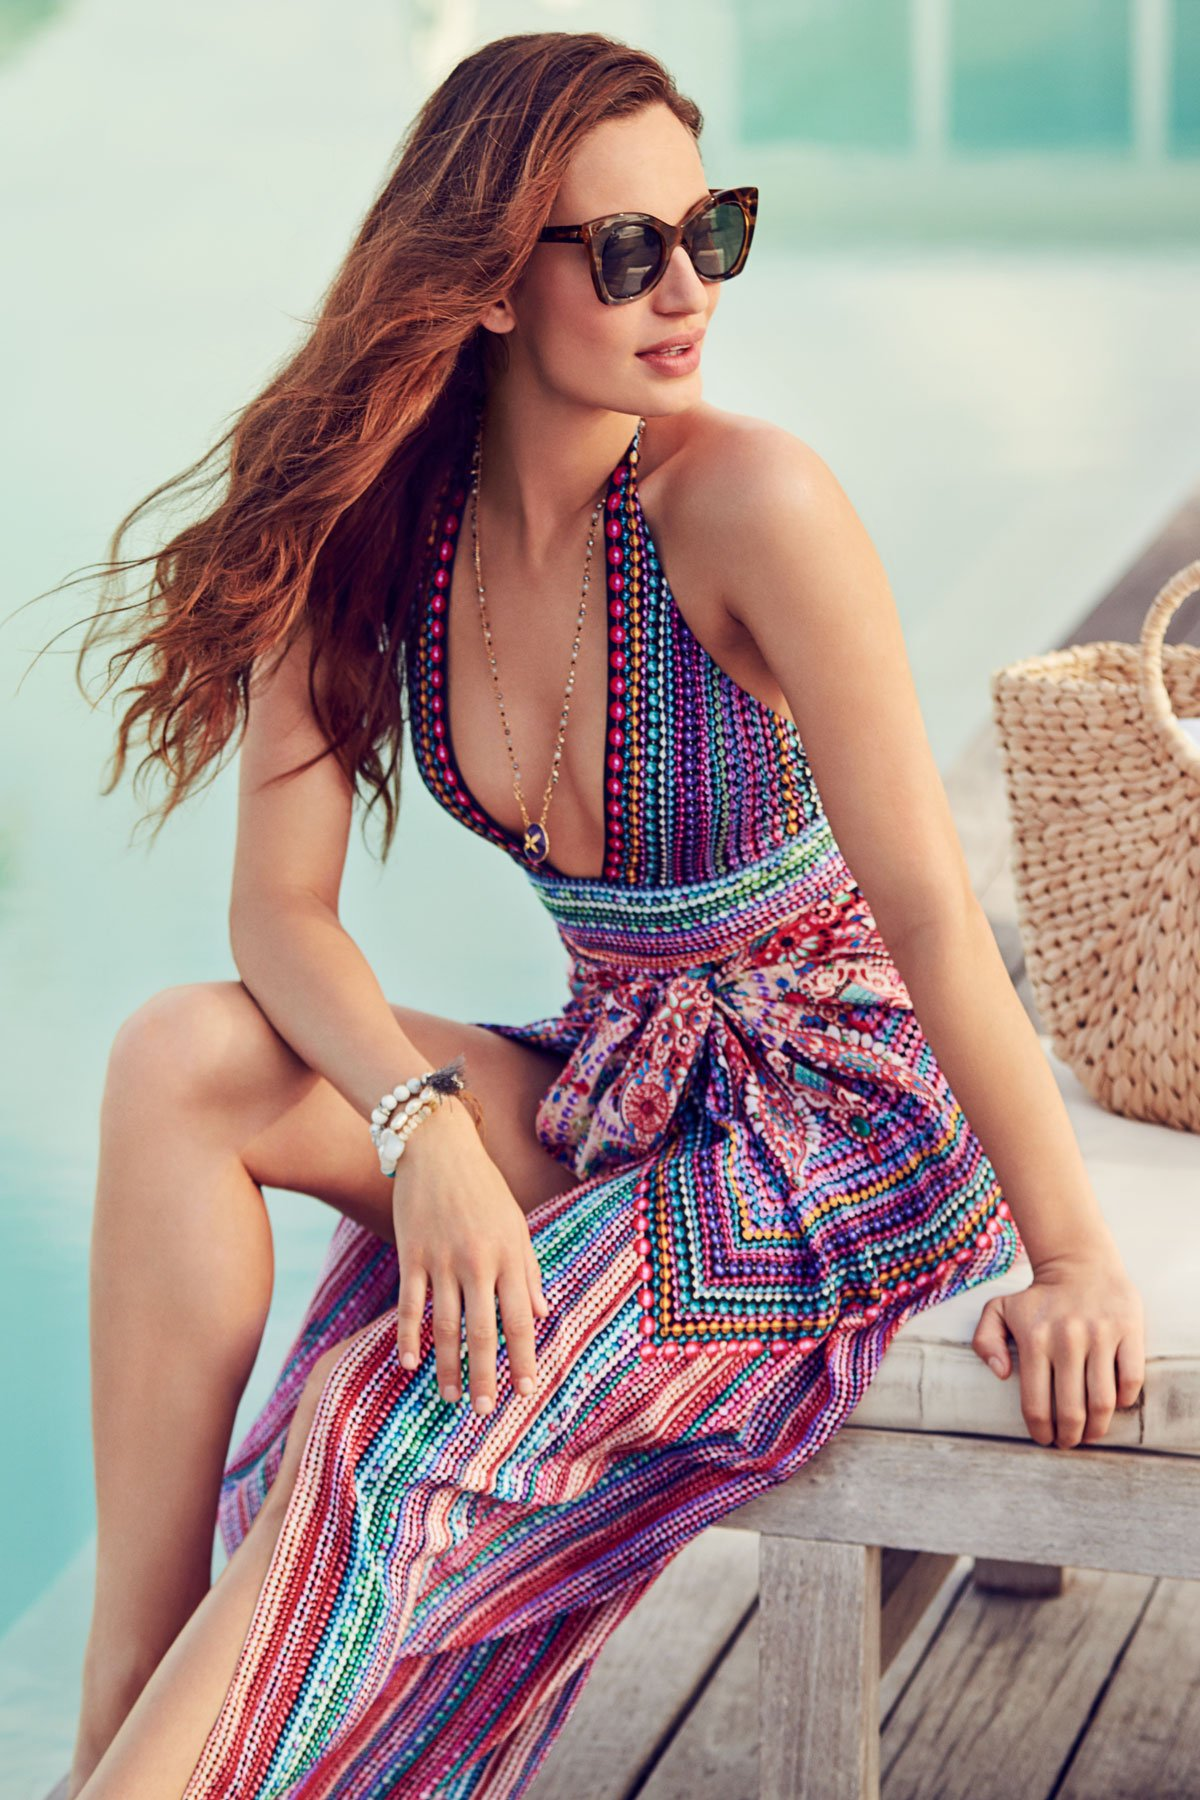 Naples Clothing stores, Naples Women's Clothing boutiques, Clothing boutiques in Naples FL, Women's swimwear, Women's swimwear Naples, Naples Women's Clothing stores, Women's Clothing boutiques in Naples, Women's gift stores in Naples